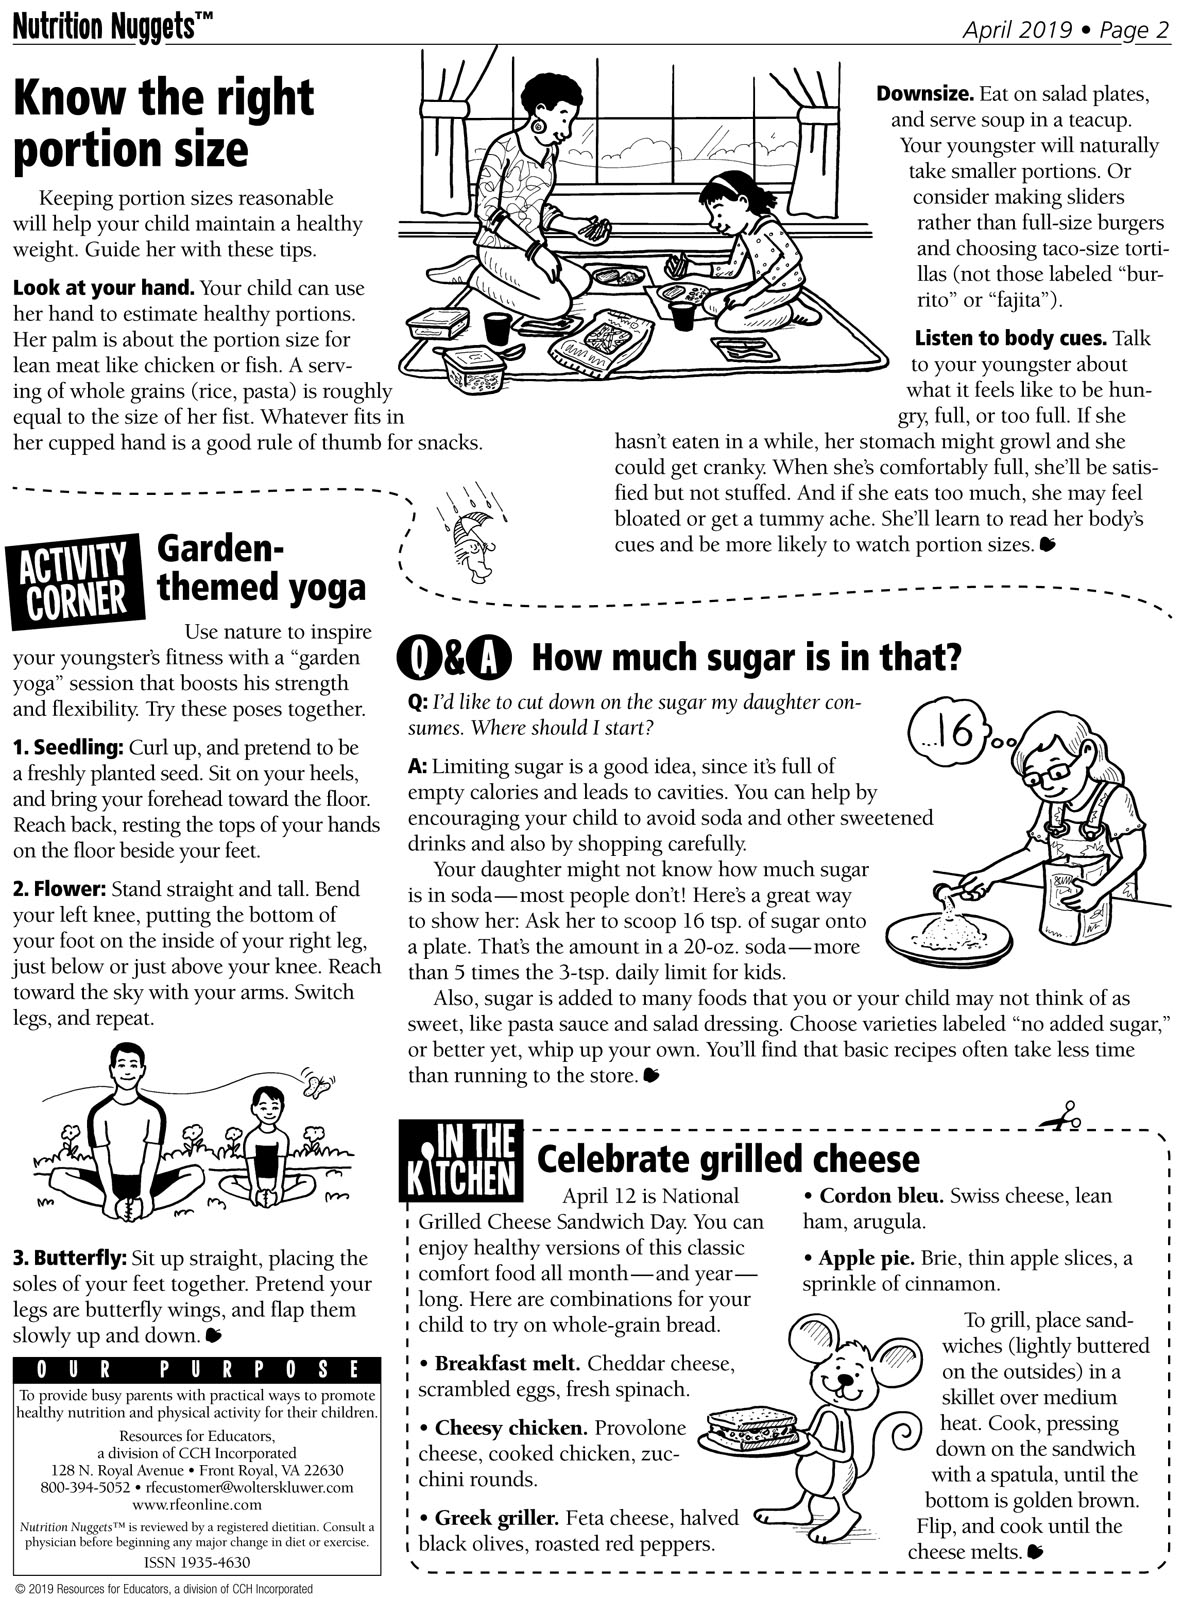 Nutrition Nuggets April issue page 2